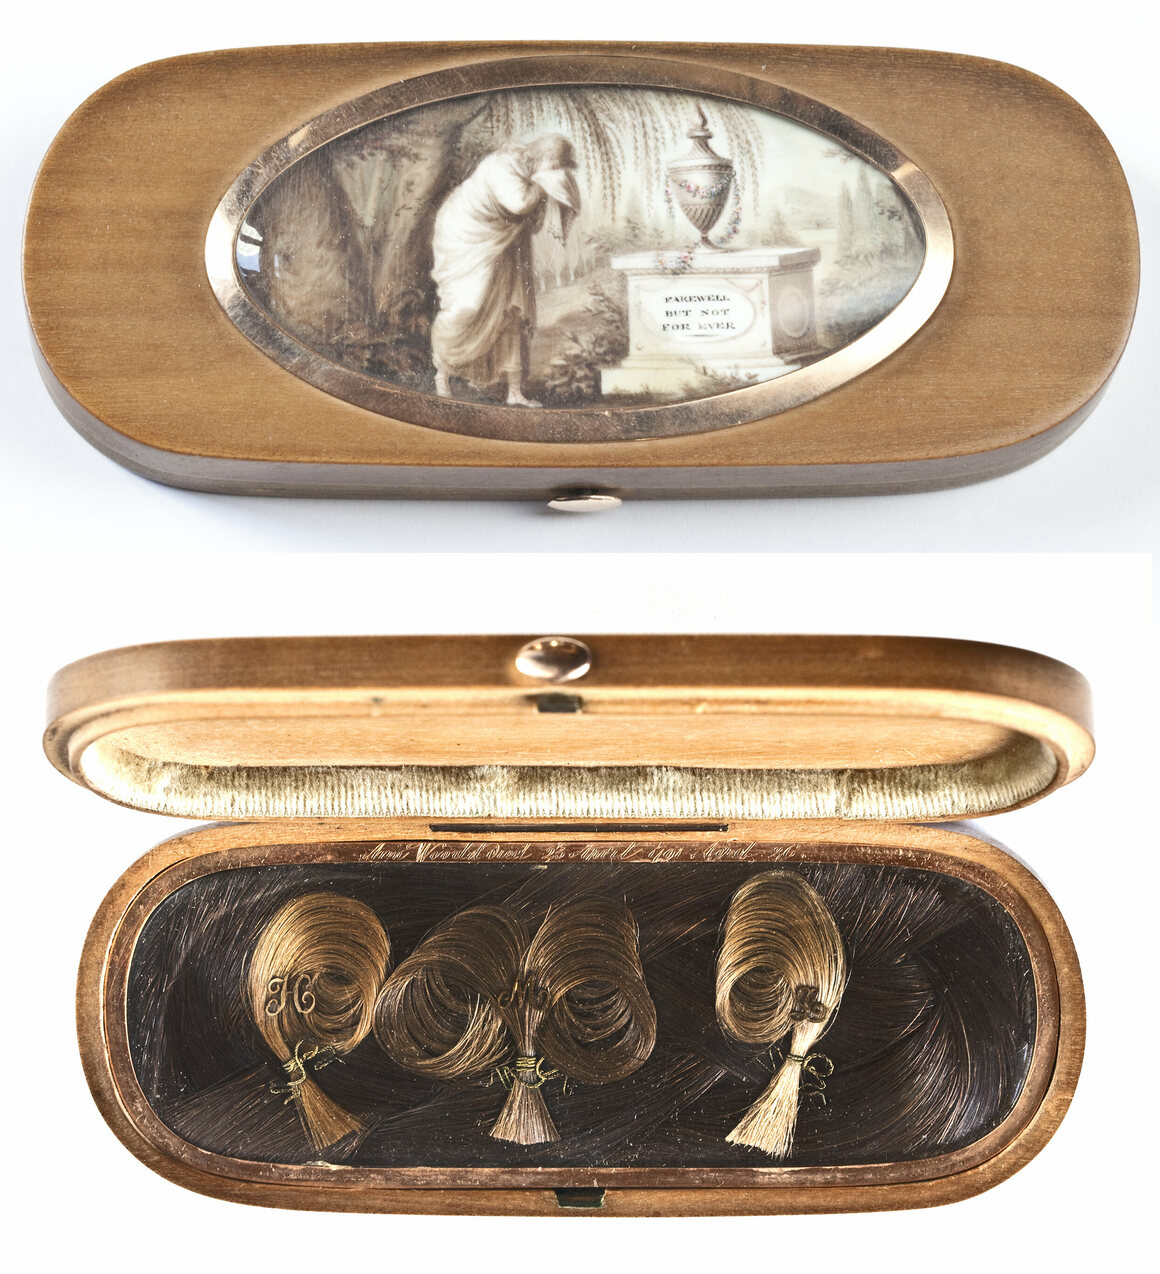 <em>Farewell but not For Ever</em> box, inscribed to Ann Woodd, who died in 1791, made with gold, Ivory, sandal wood, sepia, leather, satin, dissolved human hair, and woven hair, using dissolved hair sepia painting and palette work.